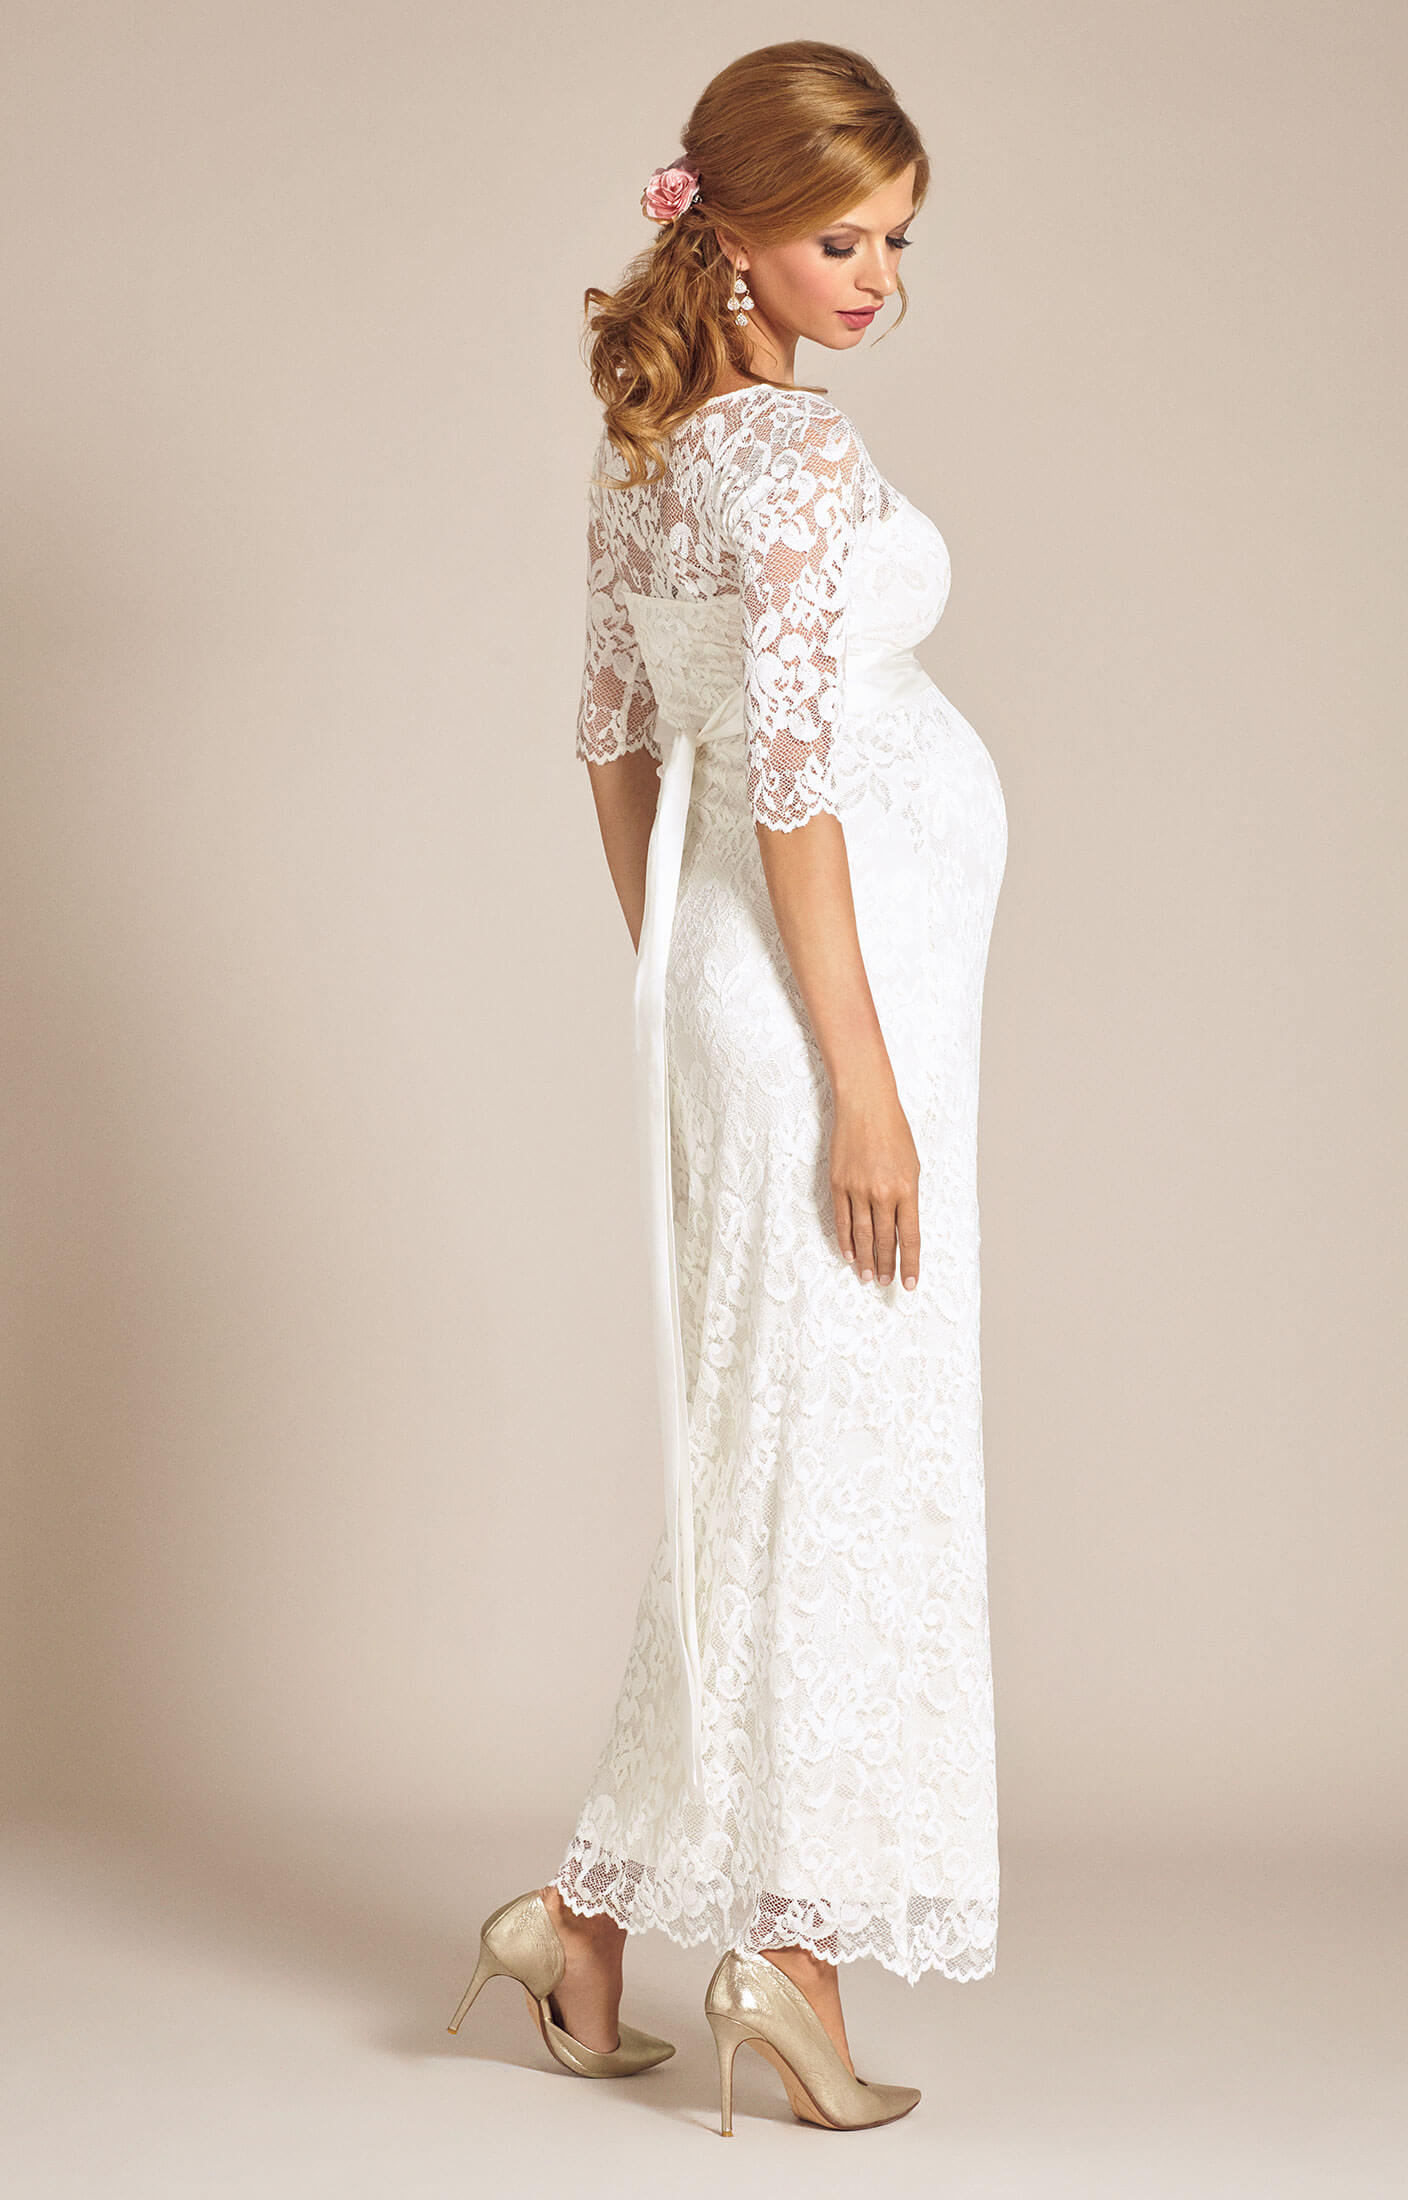 2453d19f9acf Amelia Lace Maternity Wedding Dress Long (Ivory) - Maternity Wedding Dresses,  Evening Wear and Party Clothes by Tiffany Rose UK